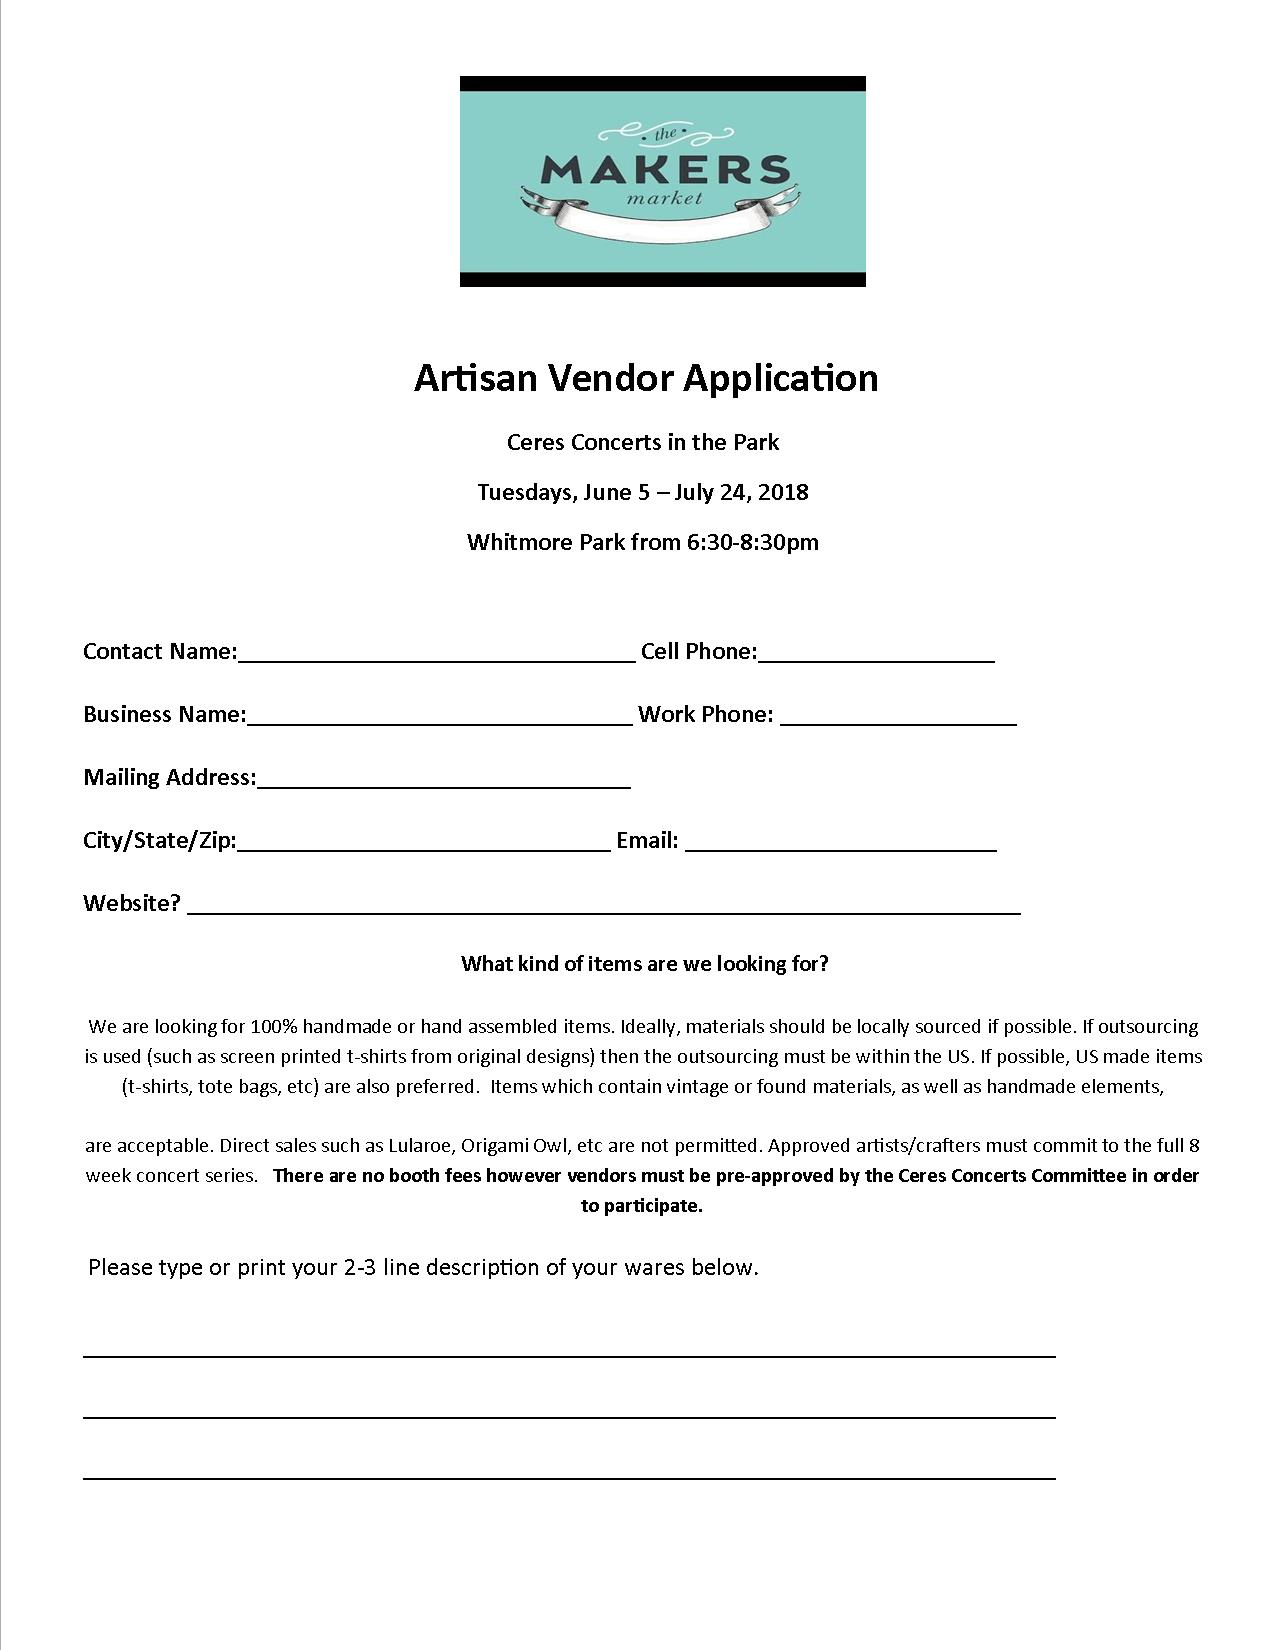 Application front page